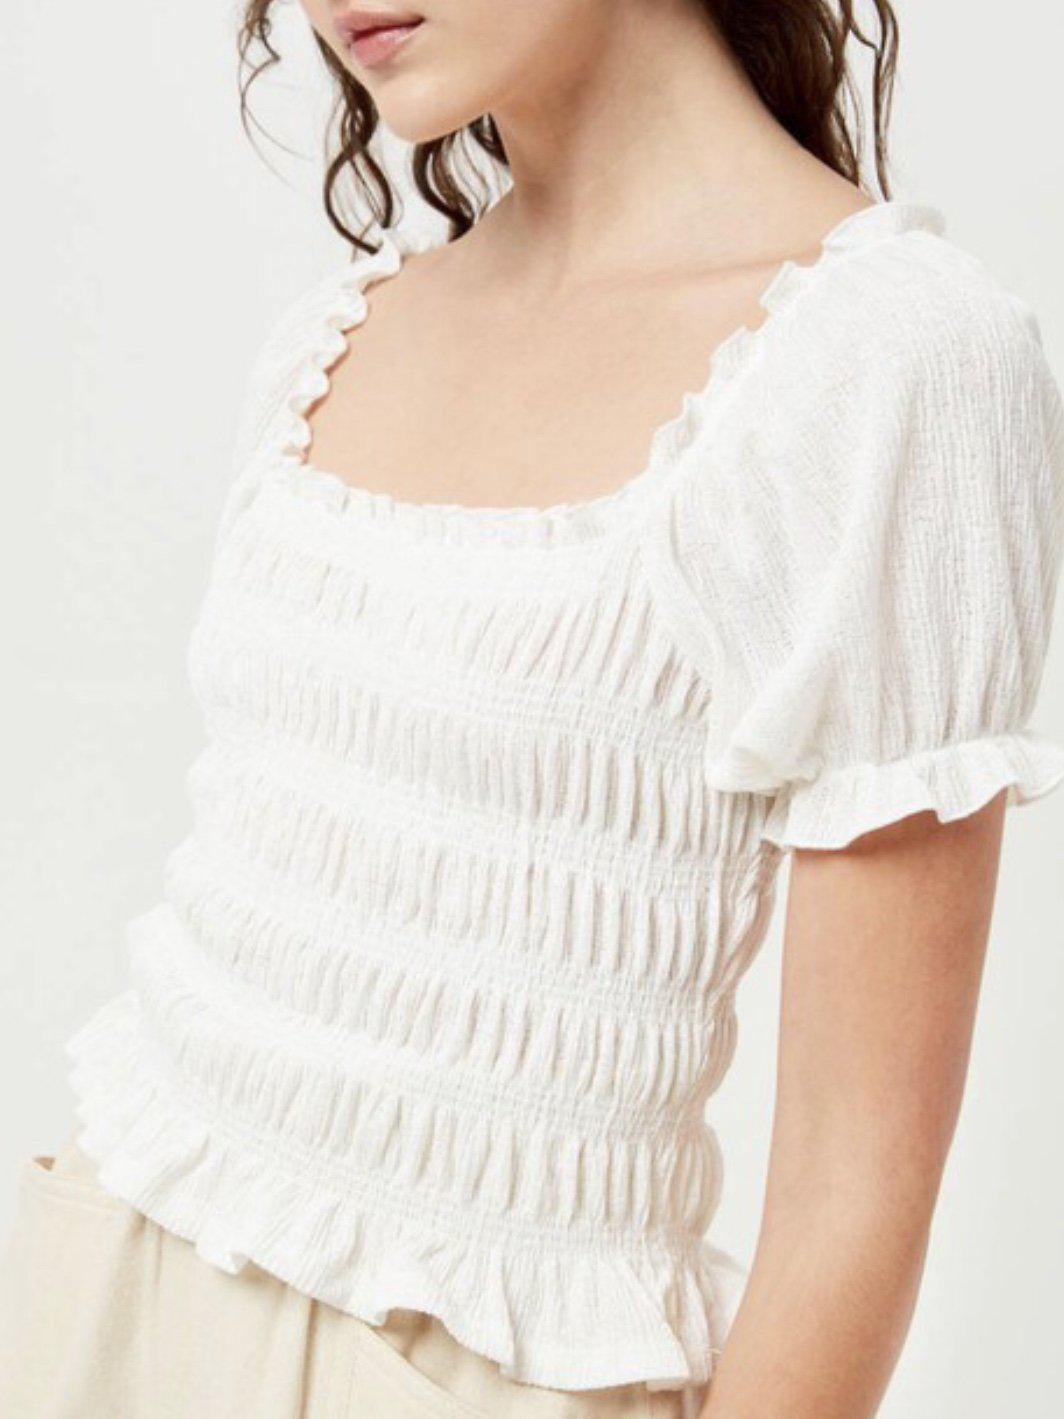 SUMMER DREAMS TOP-Women's TOP-New Arrivals-Runway Seven